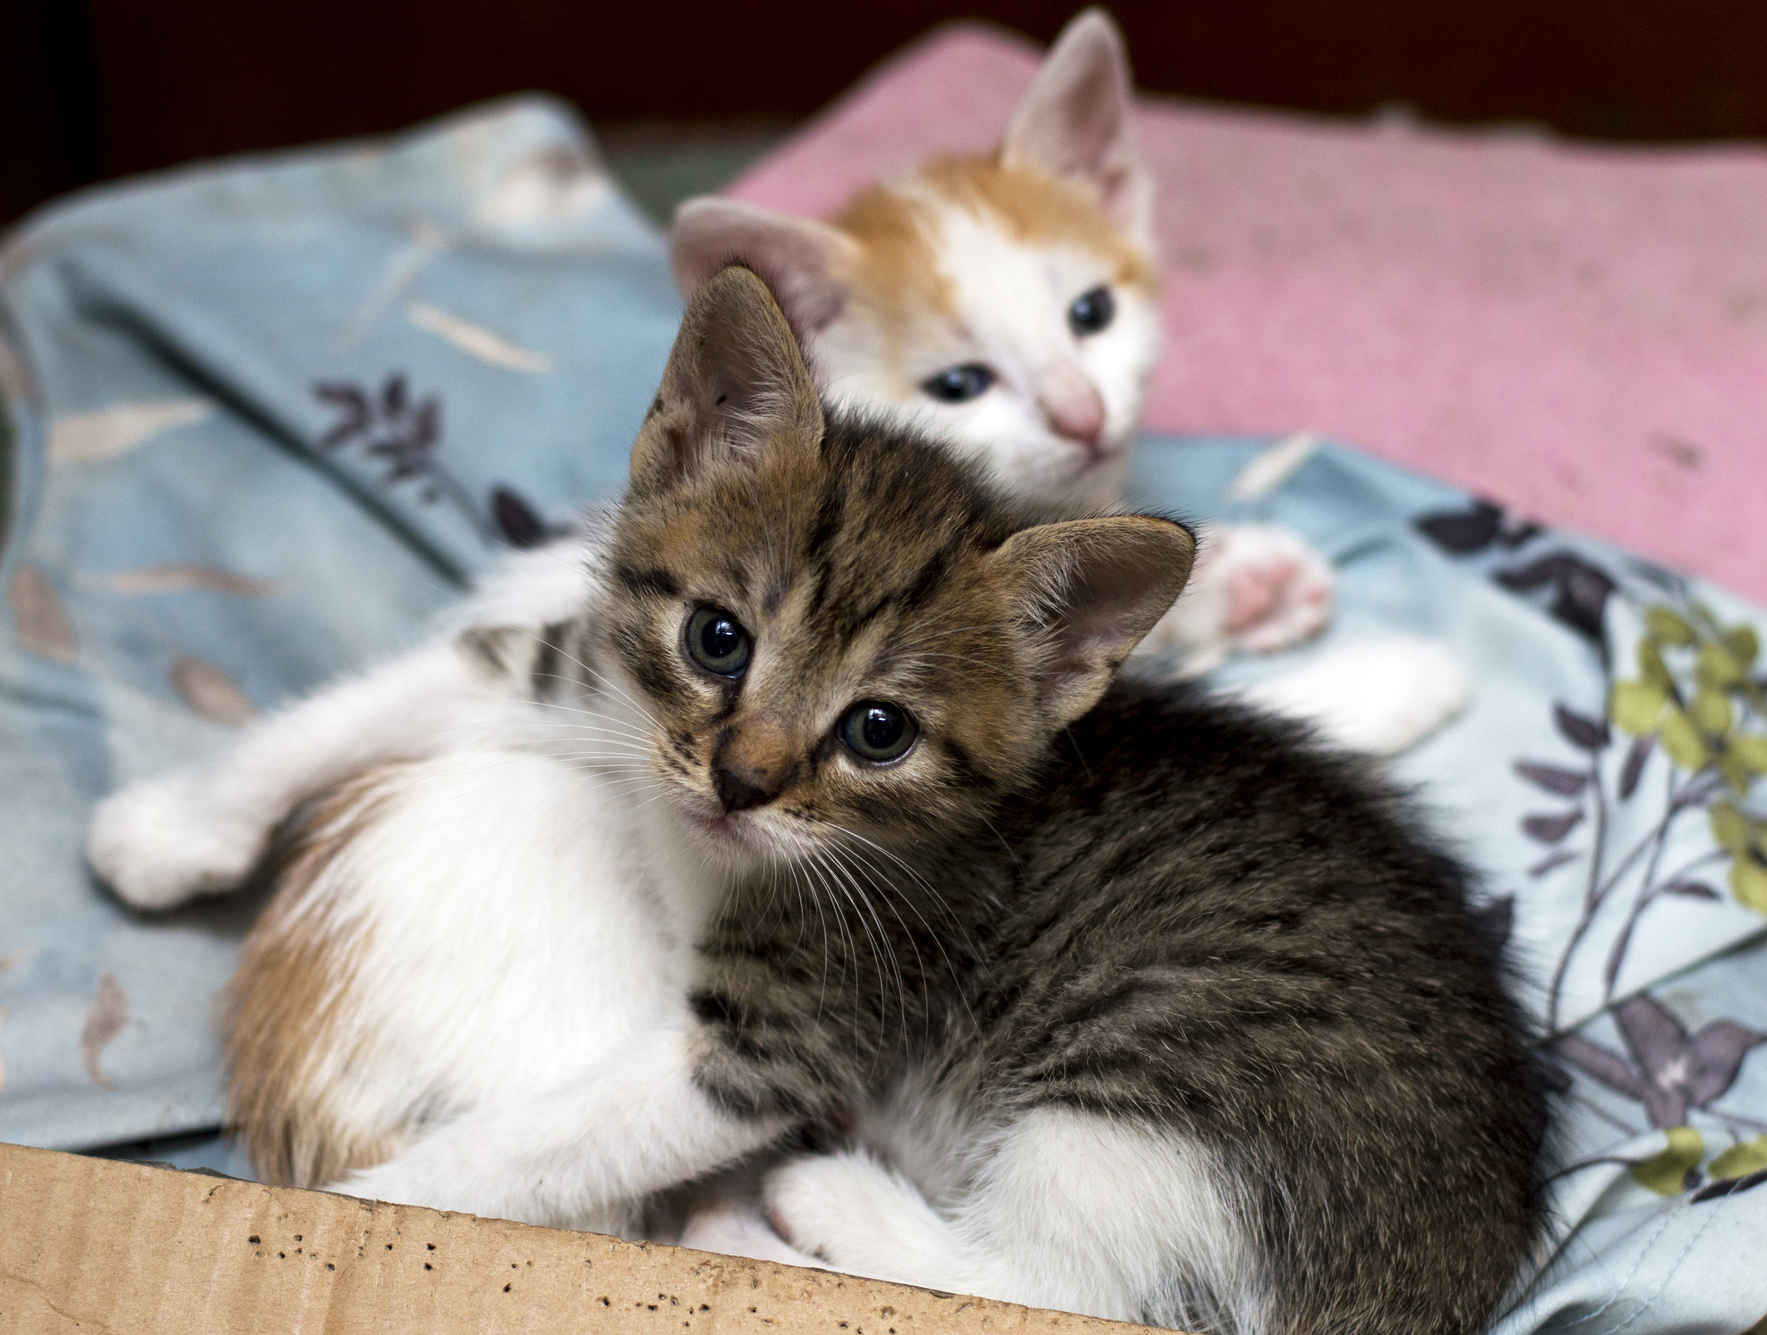 Donate now to provide veterinary care to homeless cats! image